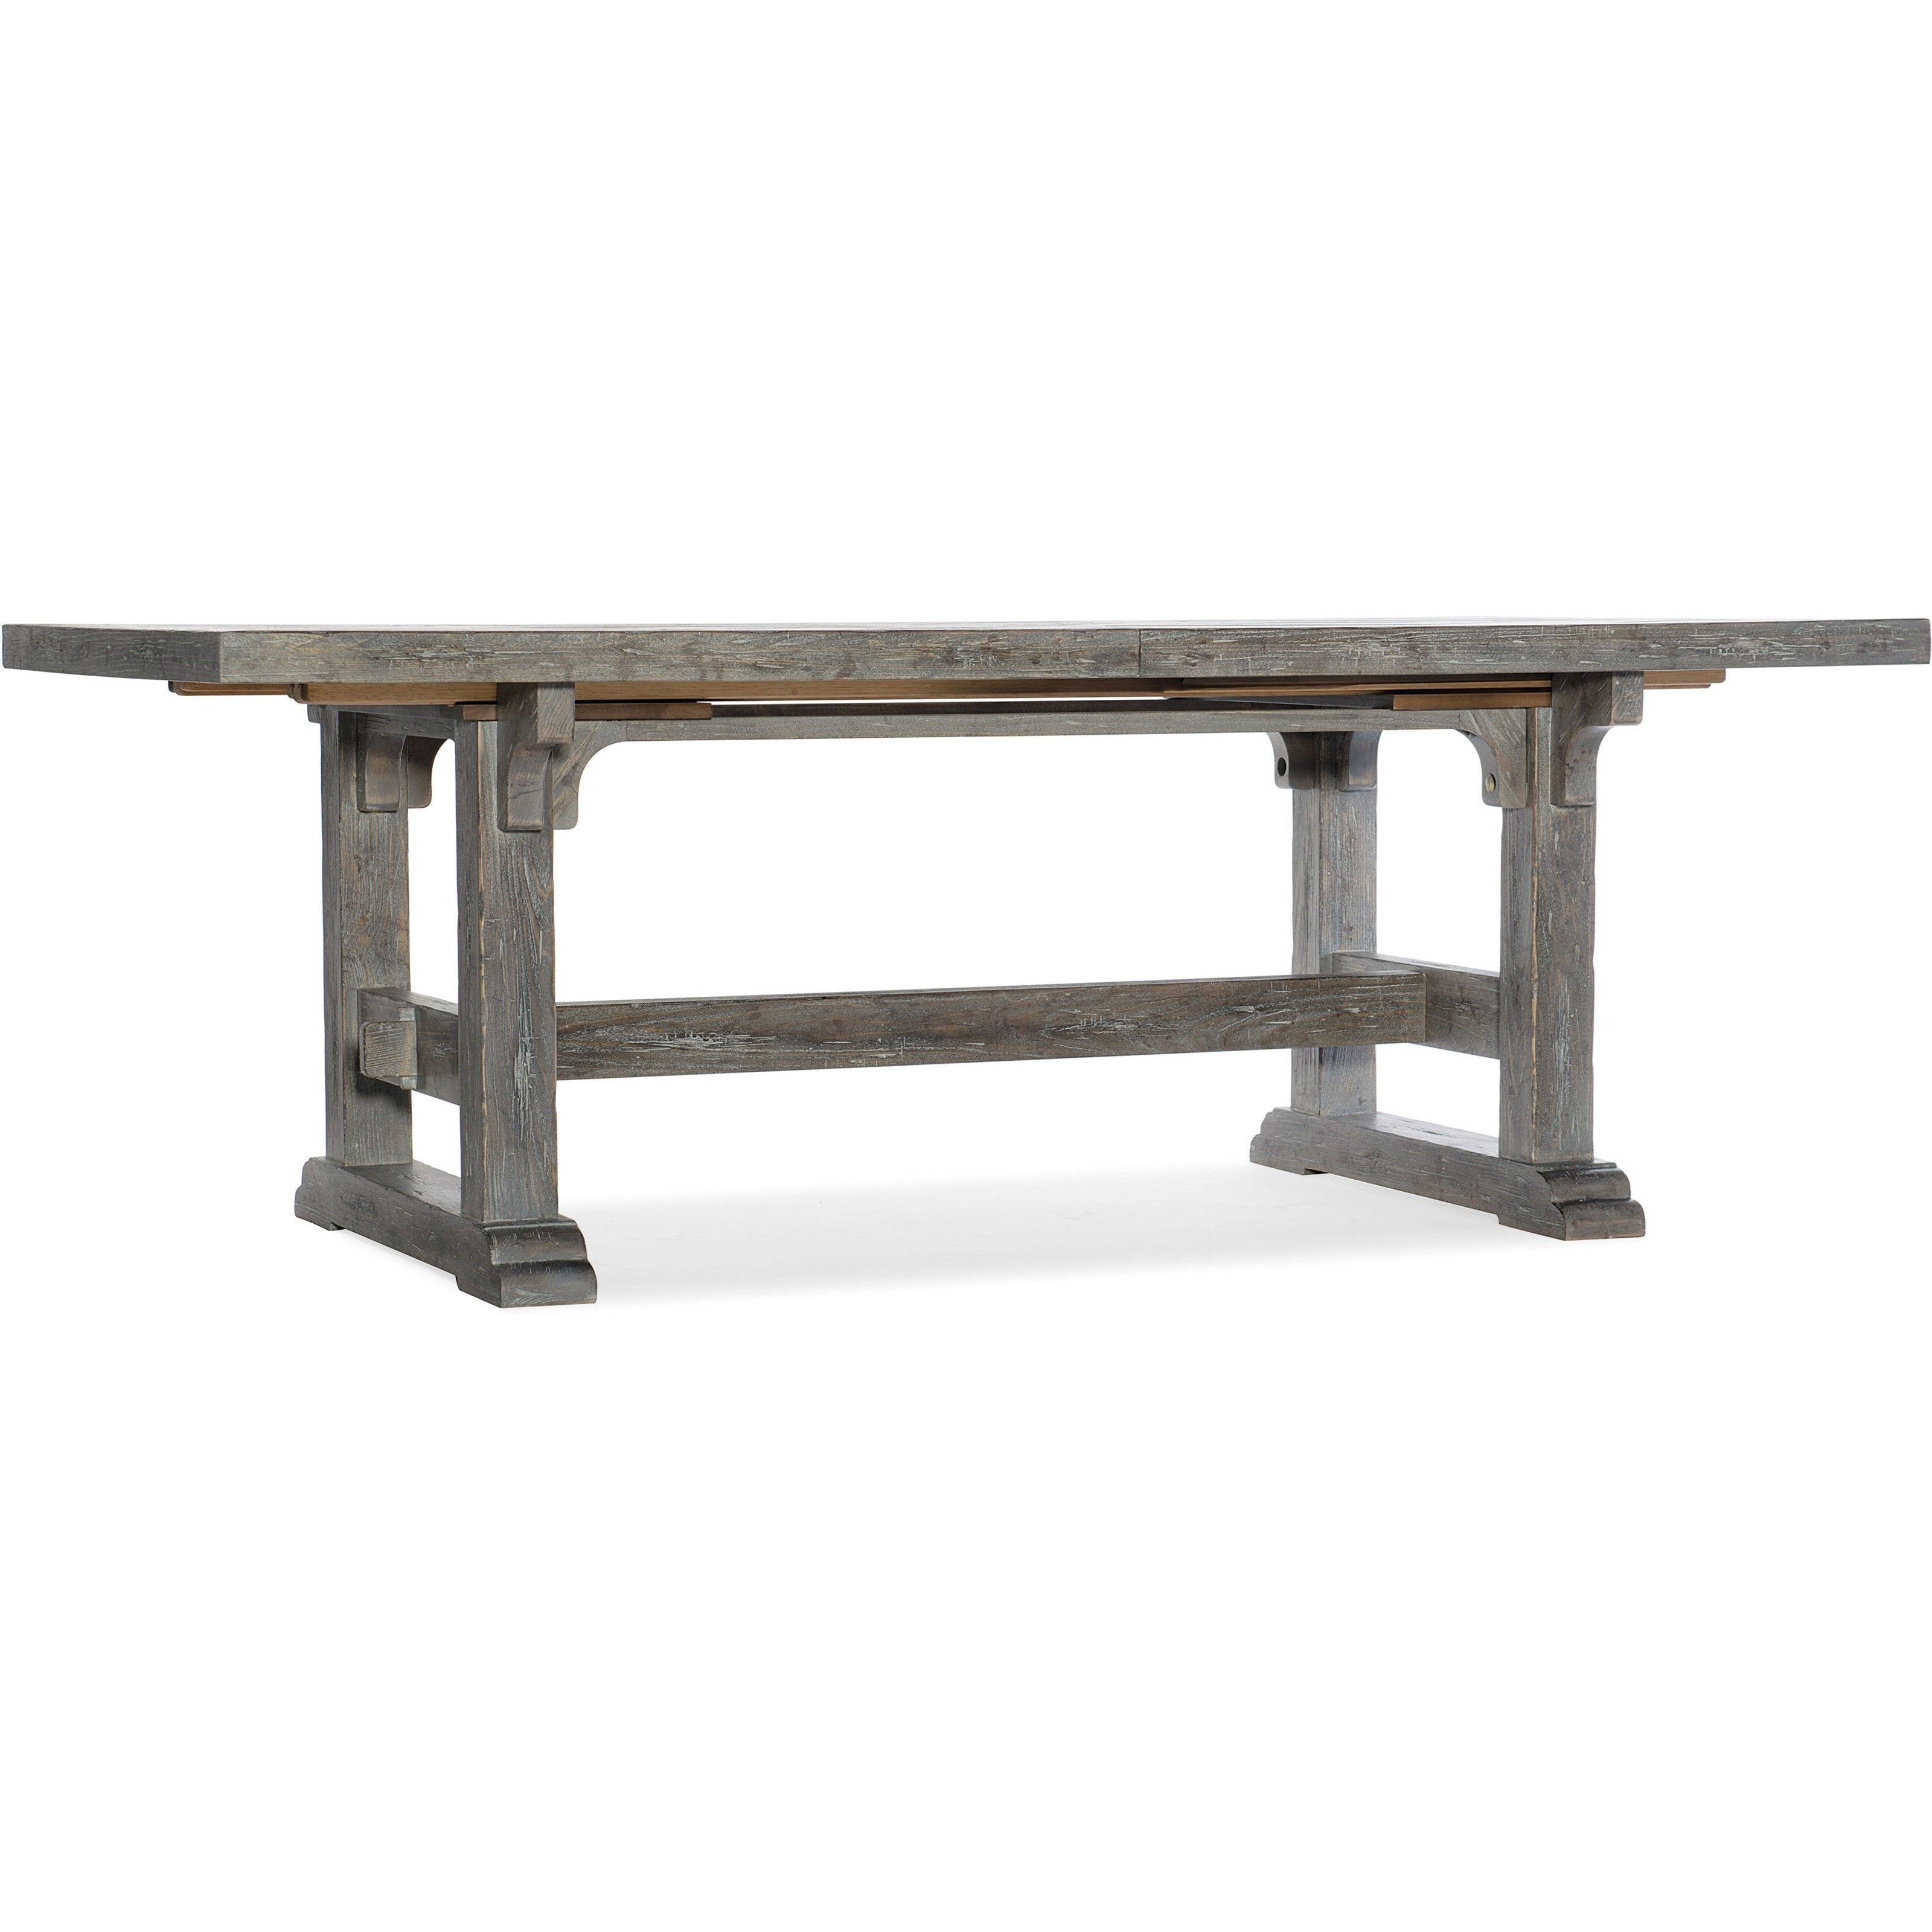 Beaumont Rectangular Dining Table w/ 2 22in Leaves by Hooker Furniture at Baer's Furniture